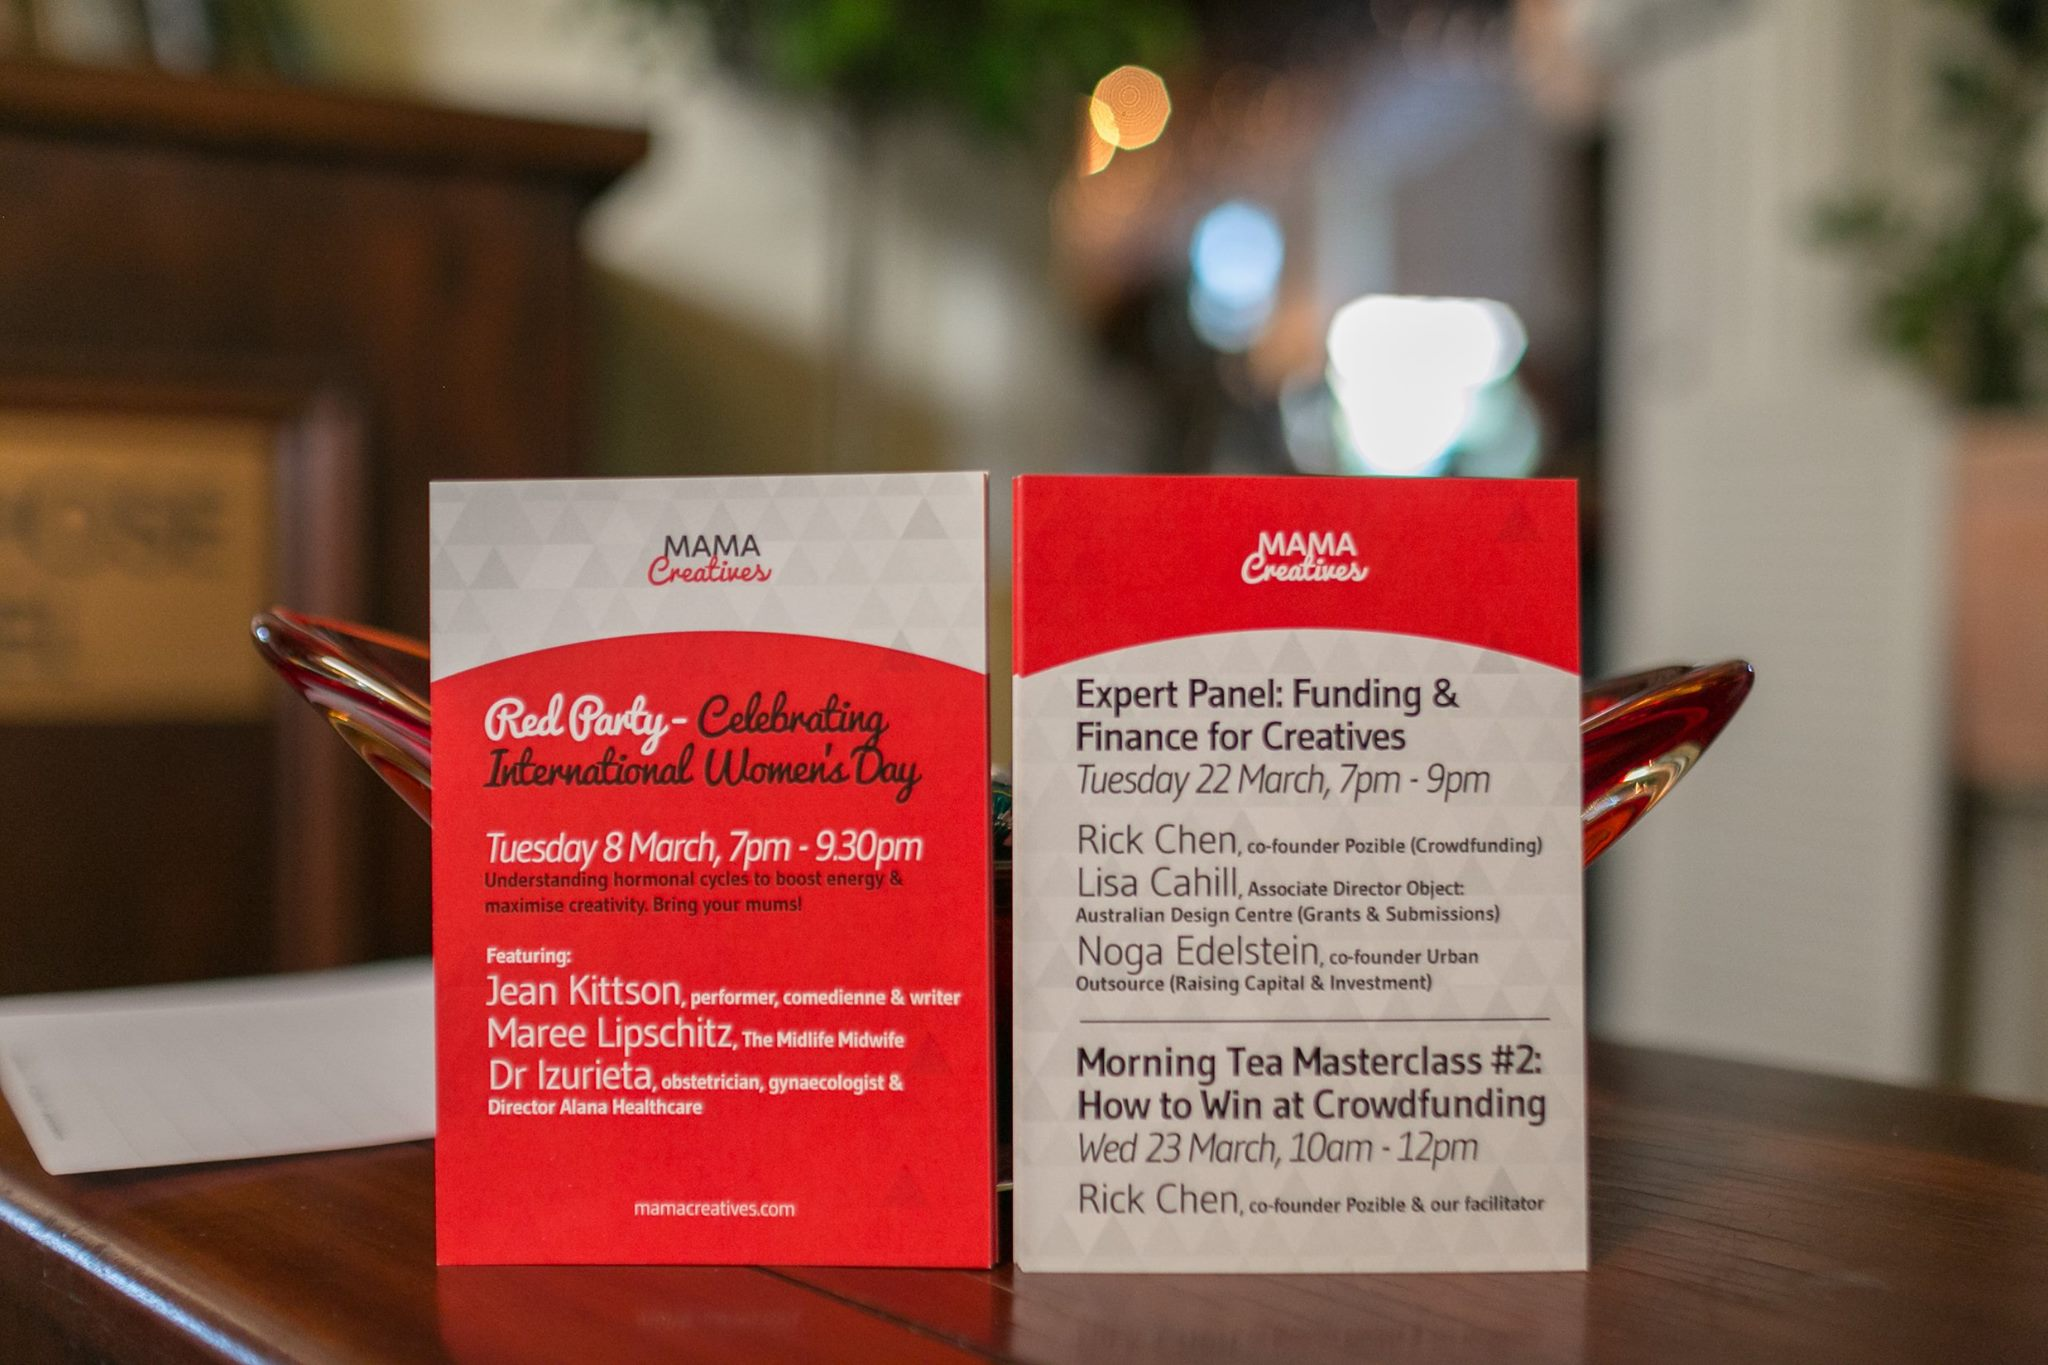 Our fabulous upcoming March events, including our first Red Party in hounour of International Women's Day on 8 March featuring Jean Kittson, Maree Lipschitz, founder of The Midlife Midwife and Dr Alex Izureita, Director at Alana Healthcare for Women.